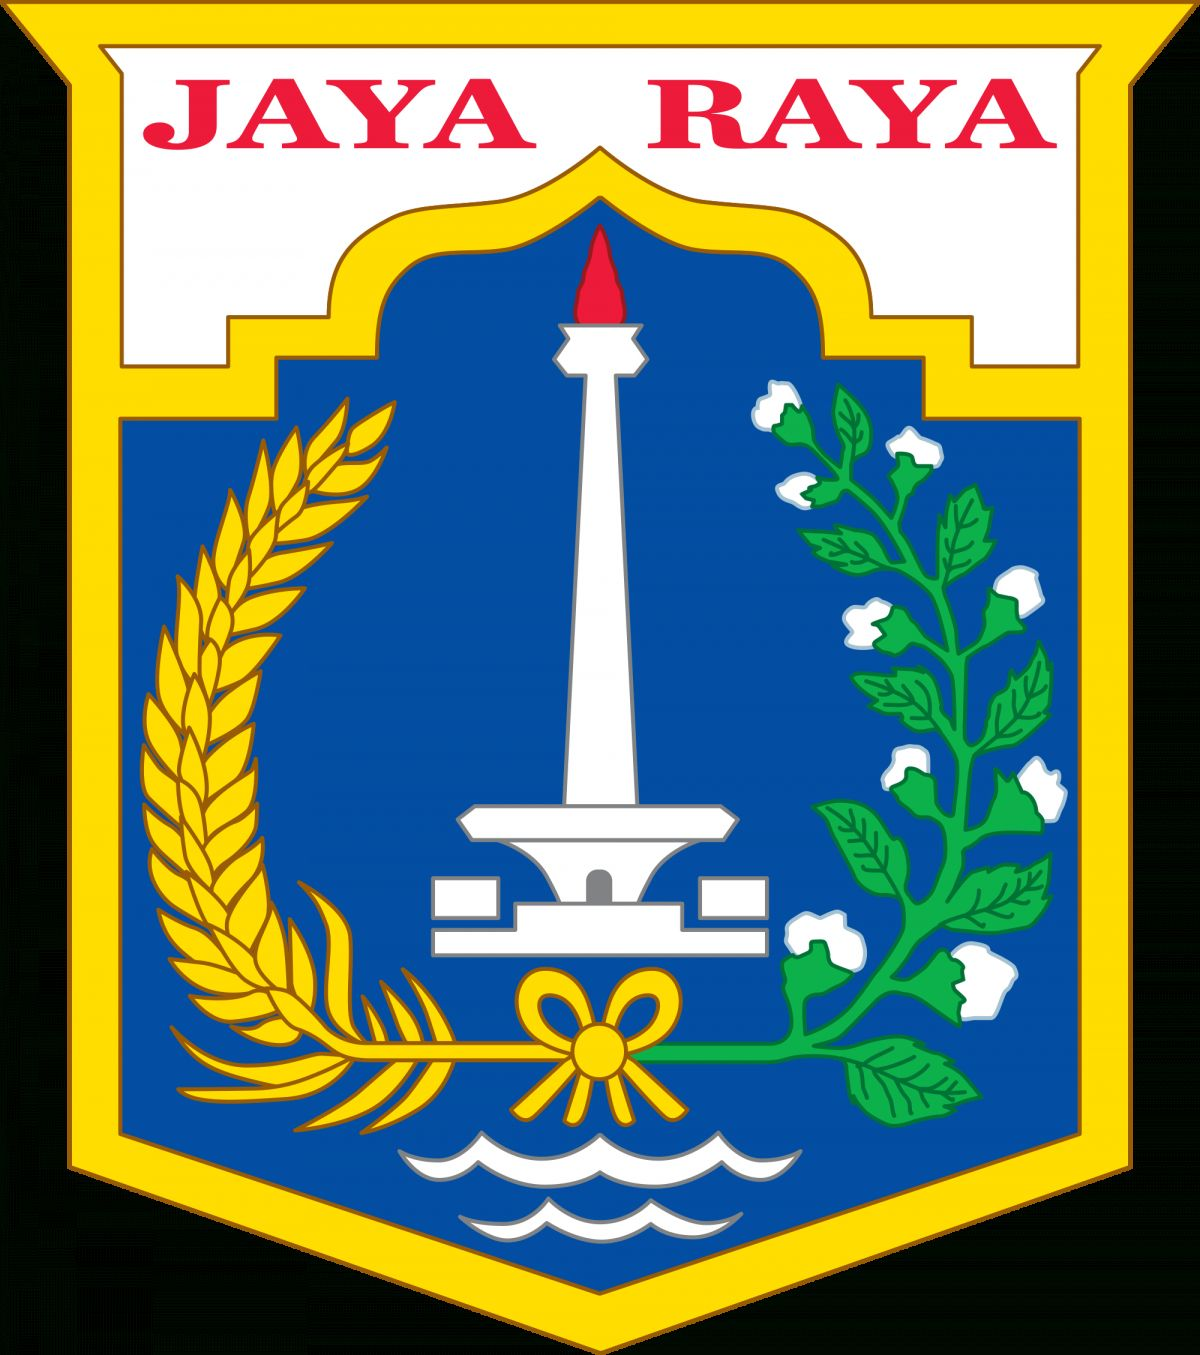 15 logo jaya raya png government logo logos city logo 15 logo jaya raya png government